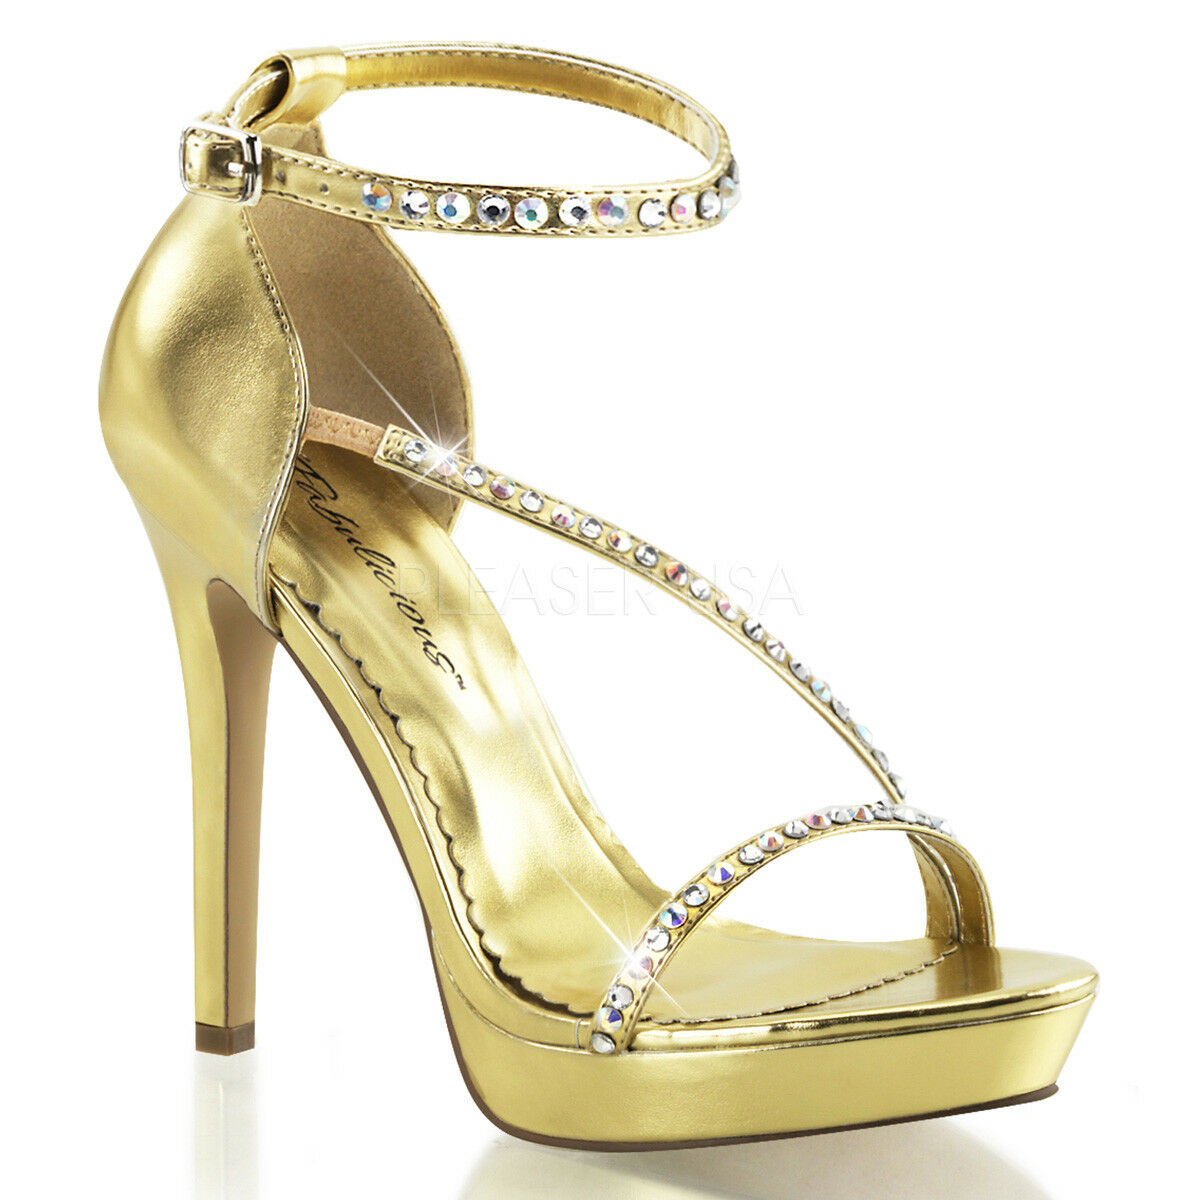 Fabulicious LUMINA-26 Strappy High Heel's Gold Metallic Größe NH08 UK 6 EU 39 NH08 Größe 29 b4edf0